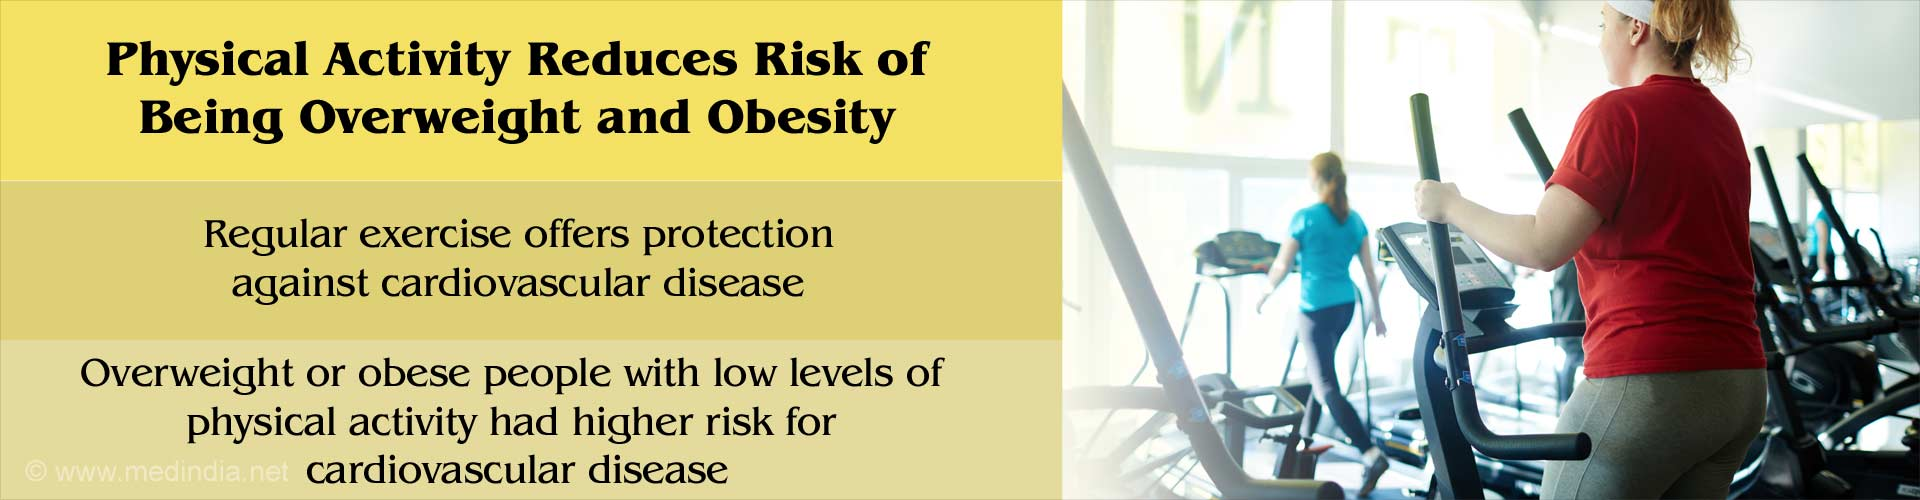 Physical Activity May Help Outweigh Impact of Obesity on Cardiovascular Disease